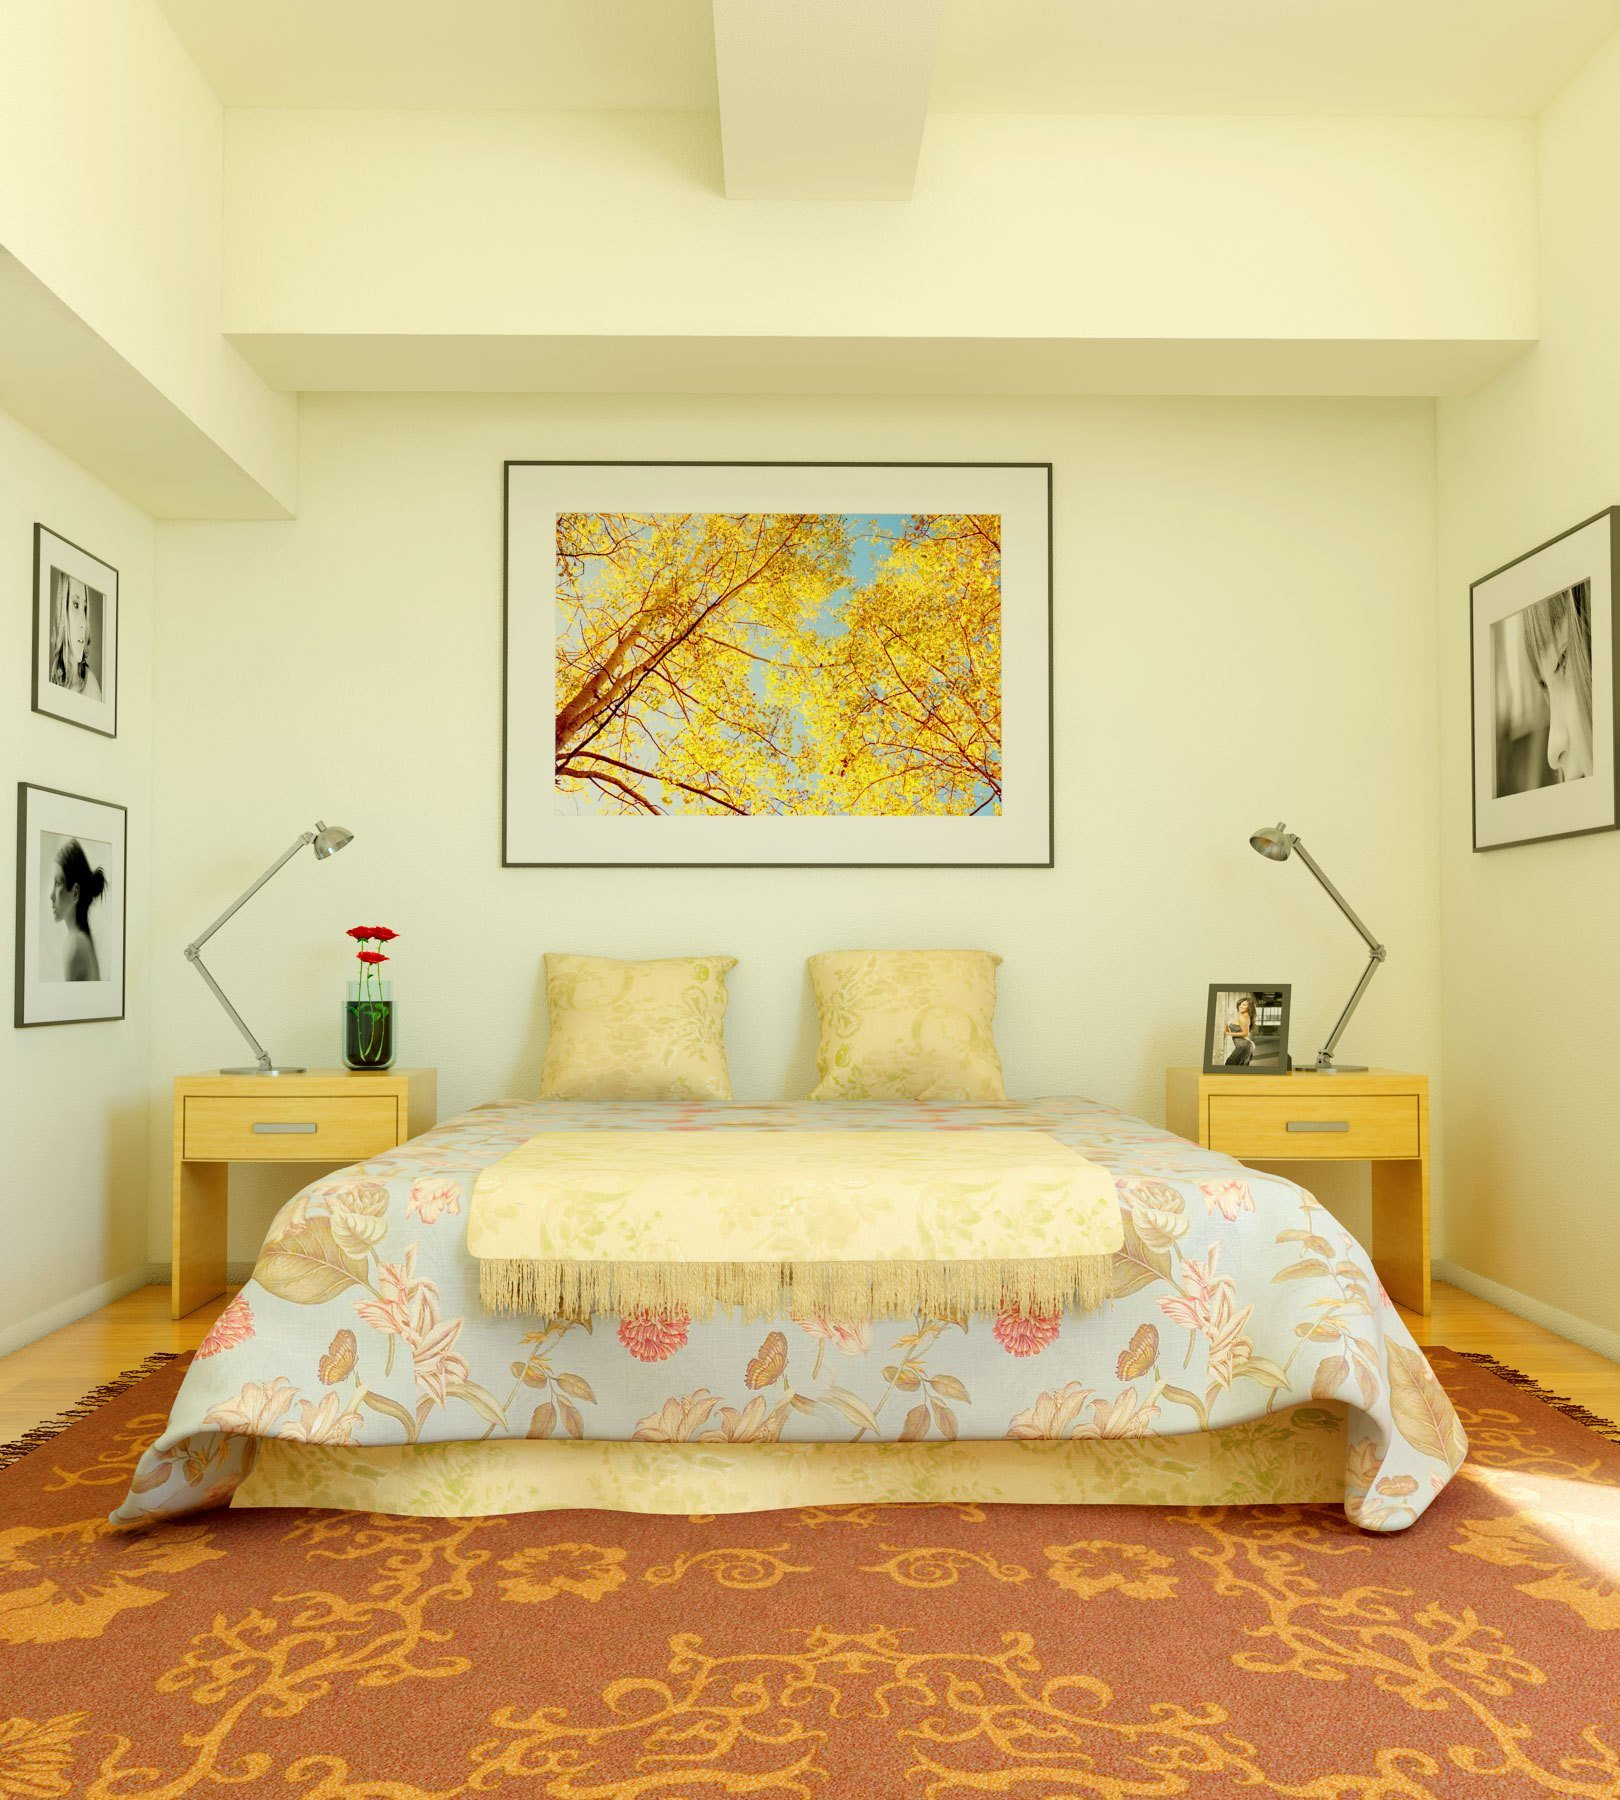 Best Paint Colors For Small Room – Some Tips Homesfeed With Pictures